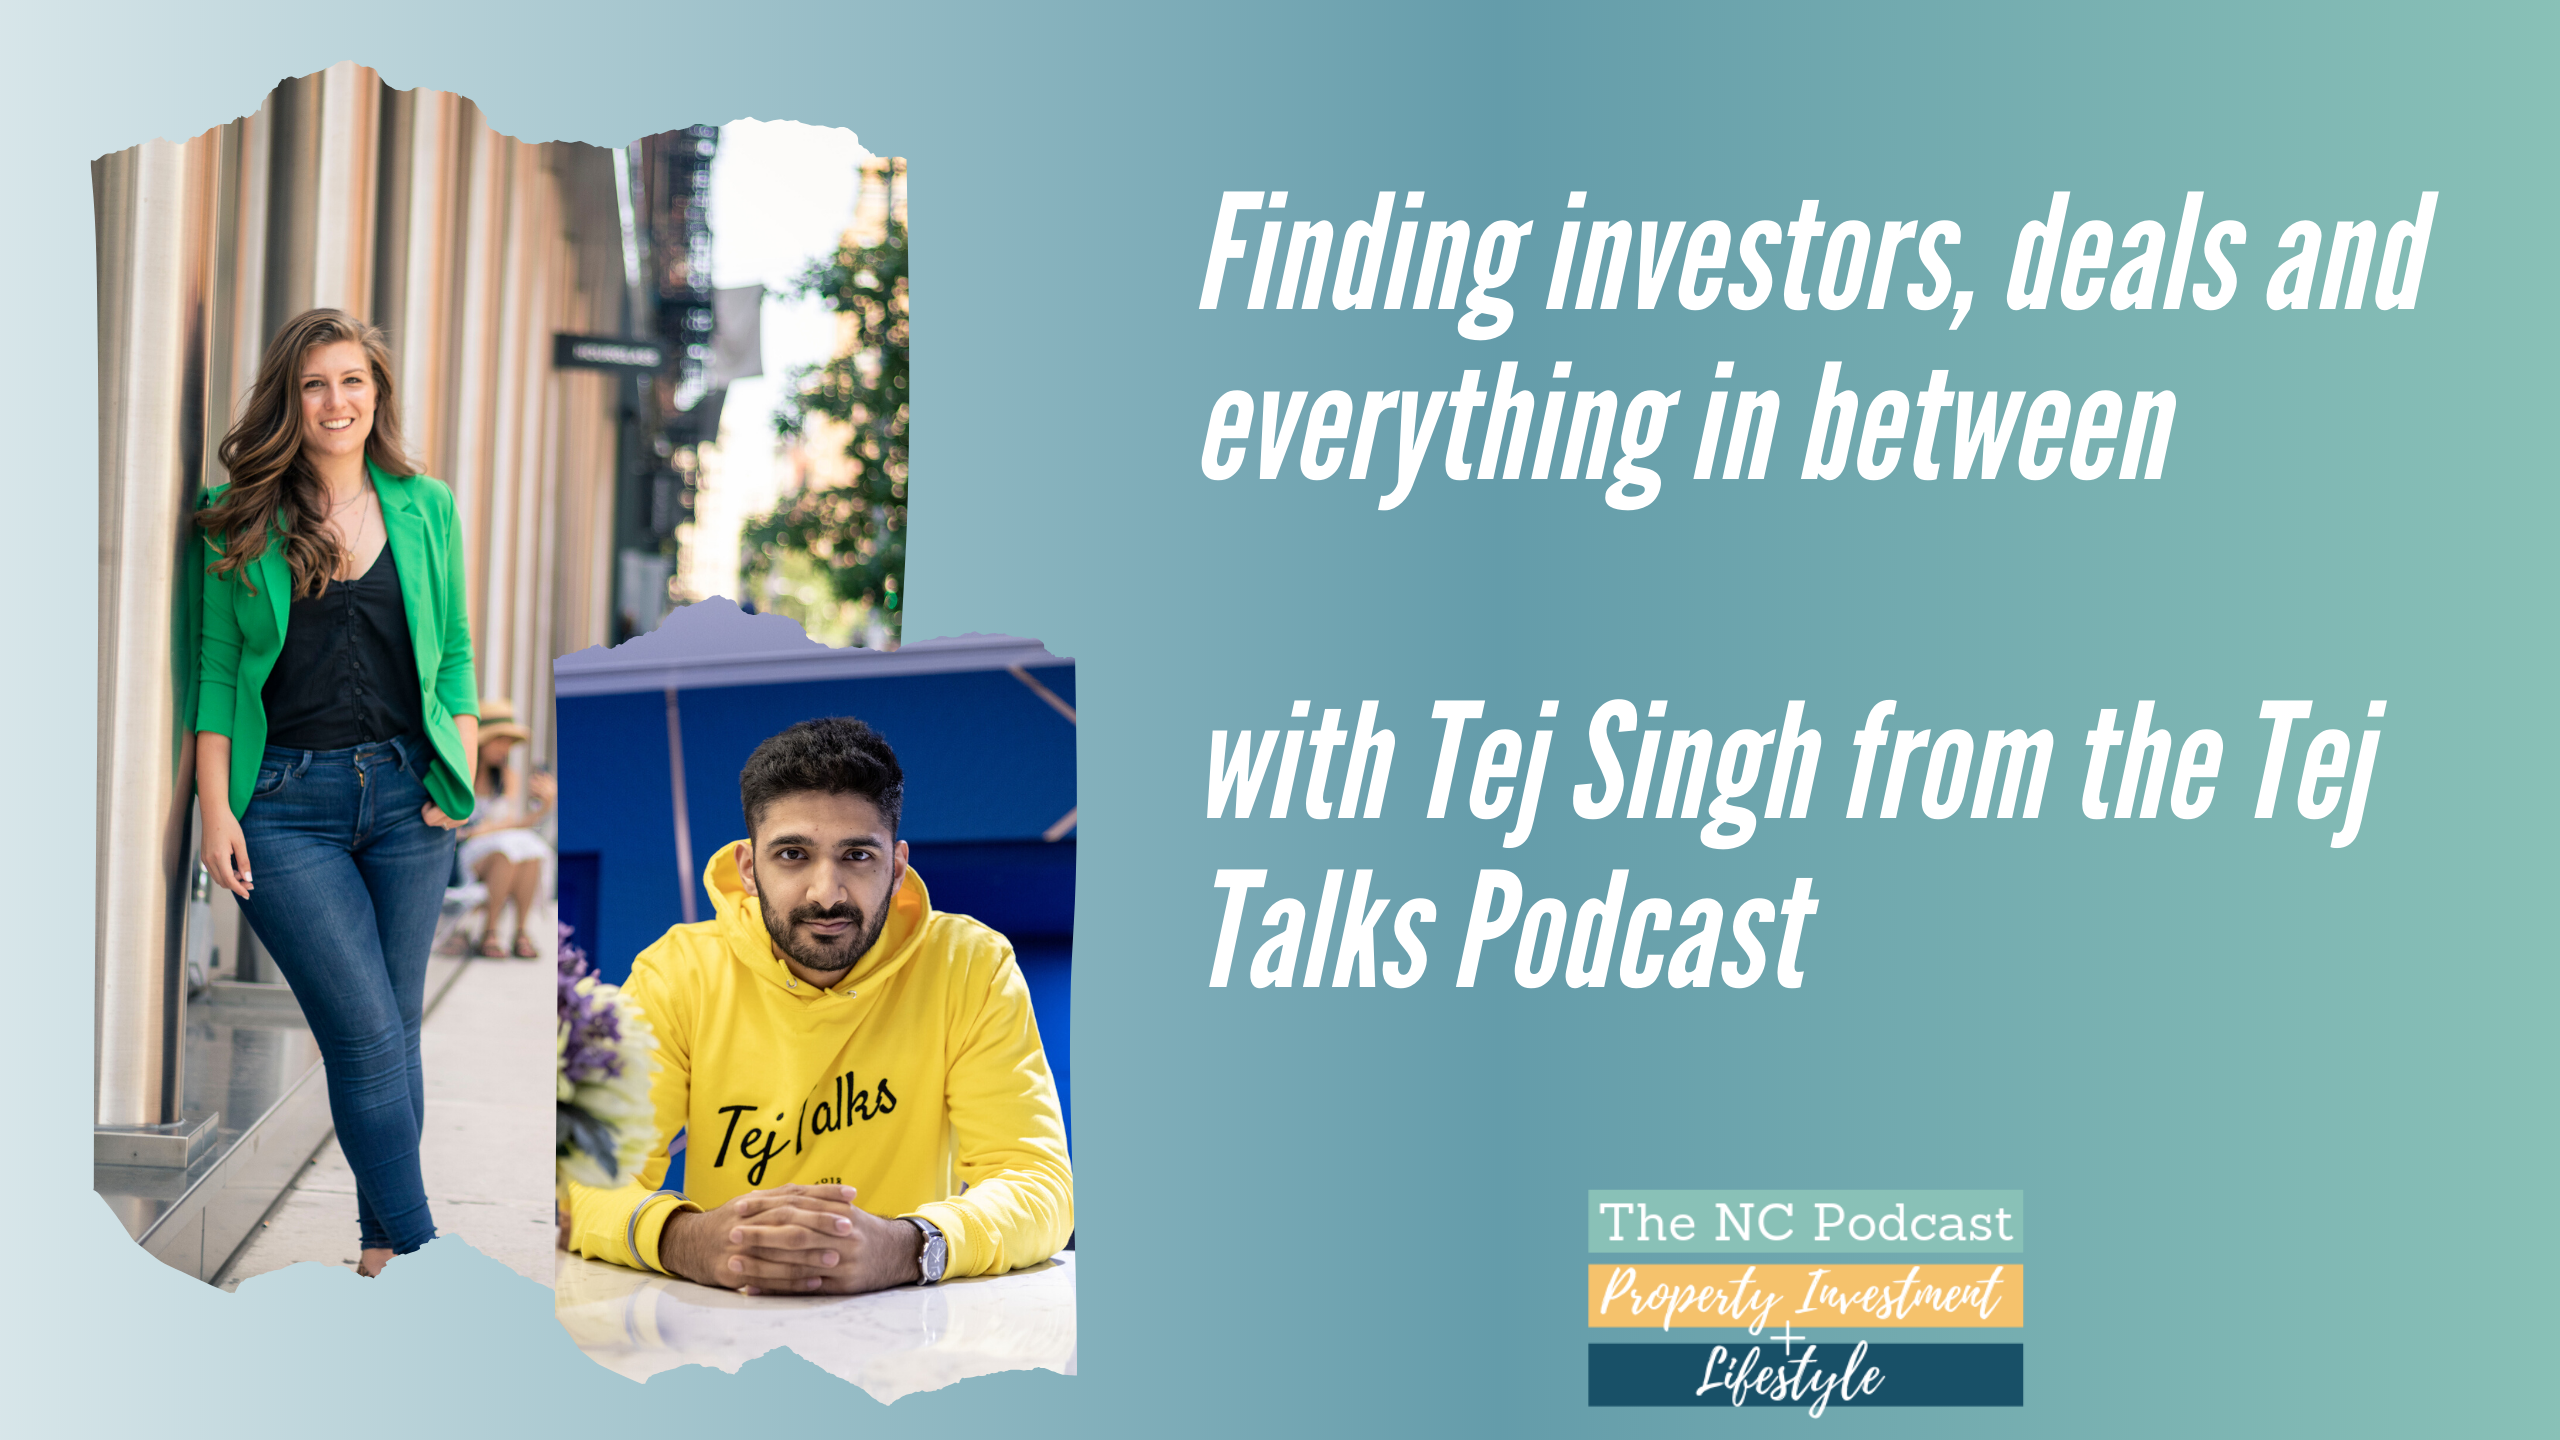 Finding investors, deals and everything in between with Tej Singh from the Tej Talks Podcast